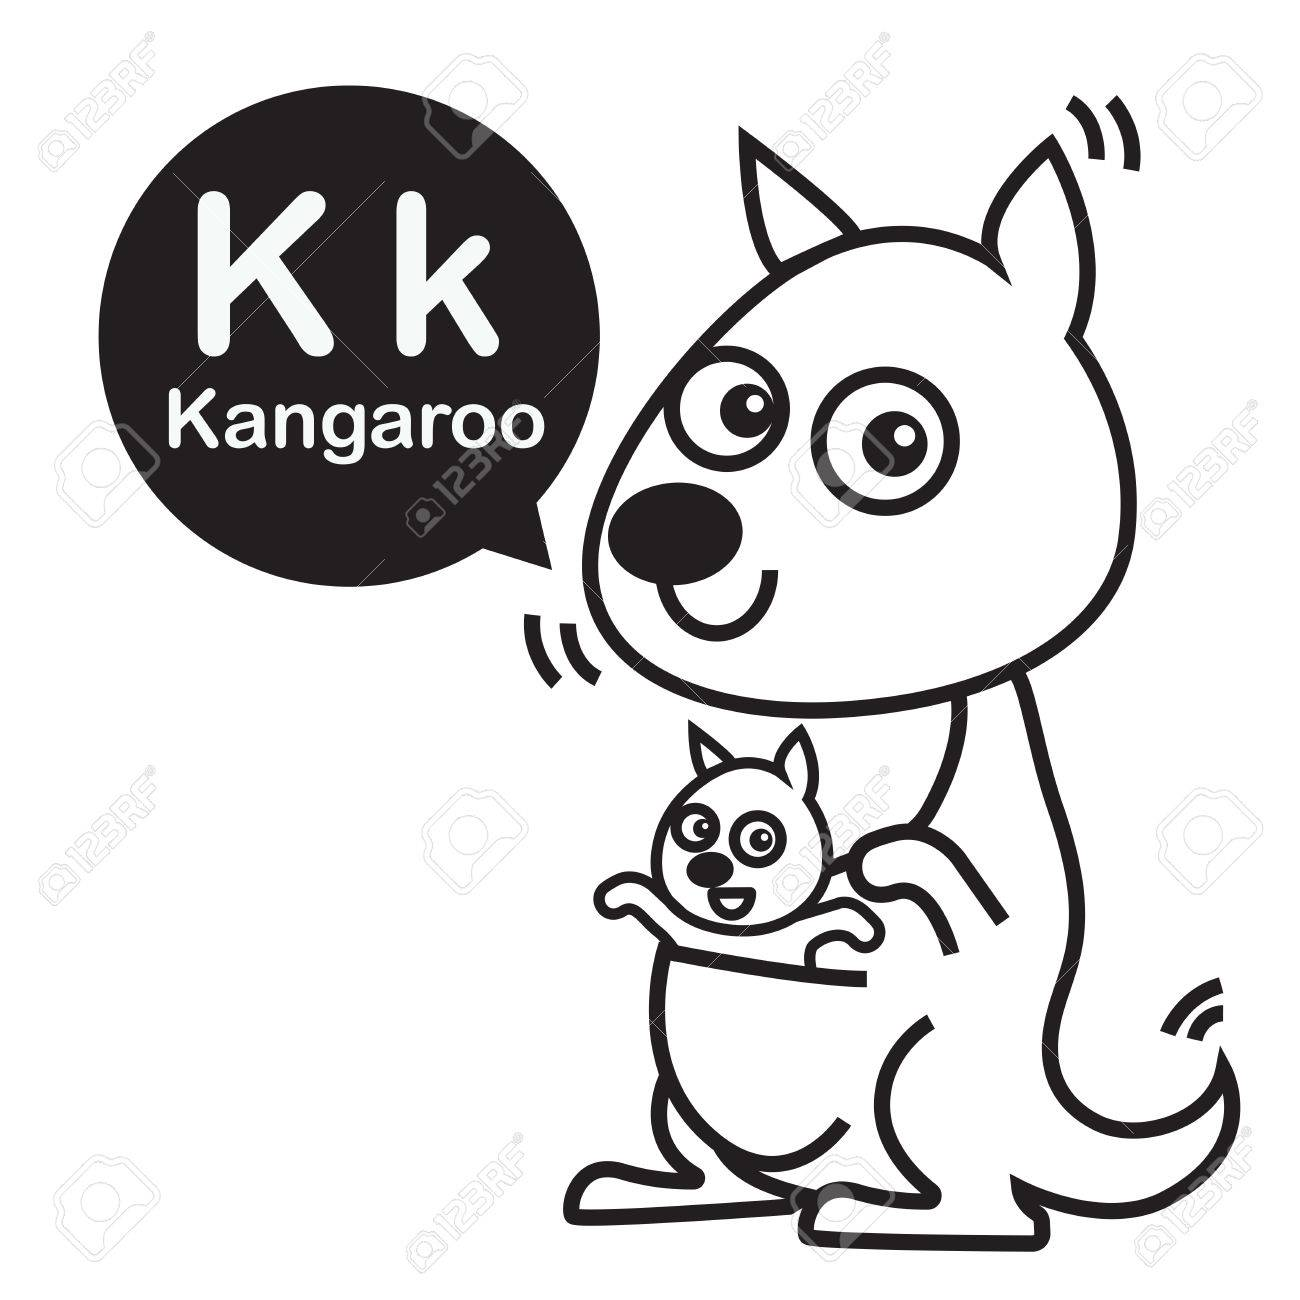 K Kangaroo Cartoon And Alphabet For Children To Learning Coloring Page Vector Illustration Eps10 Stock